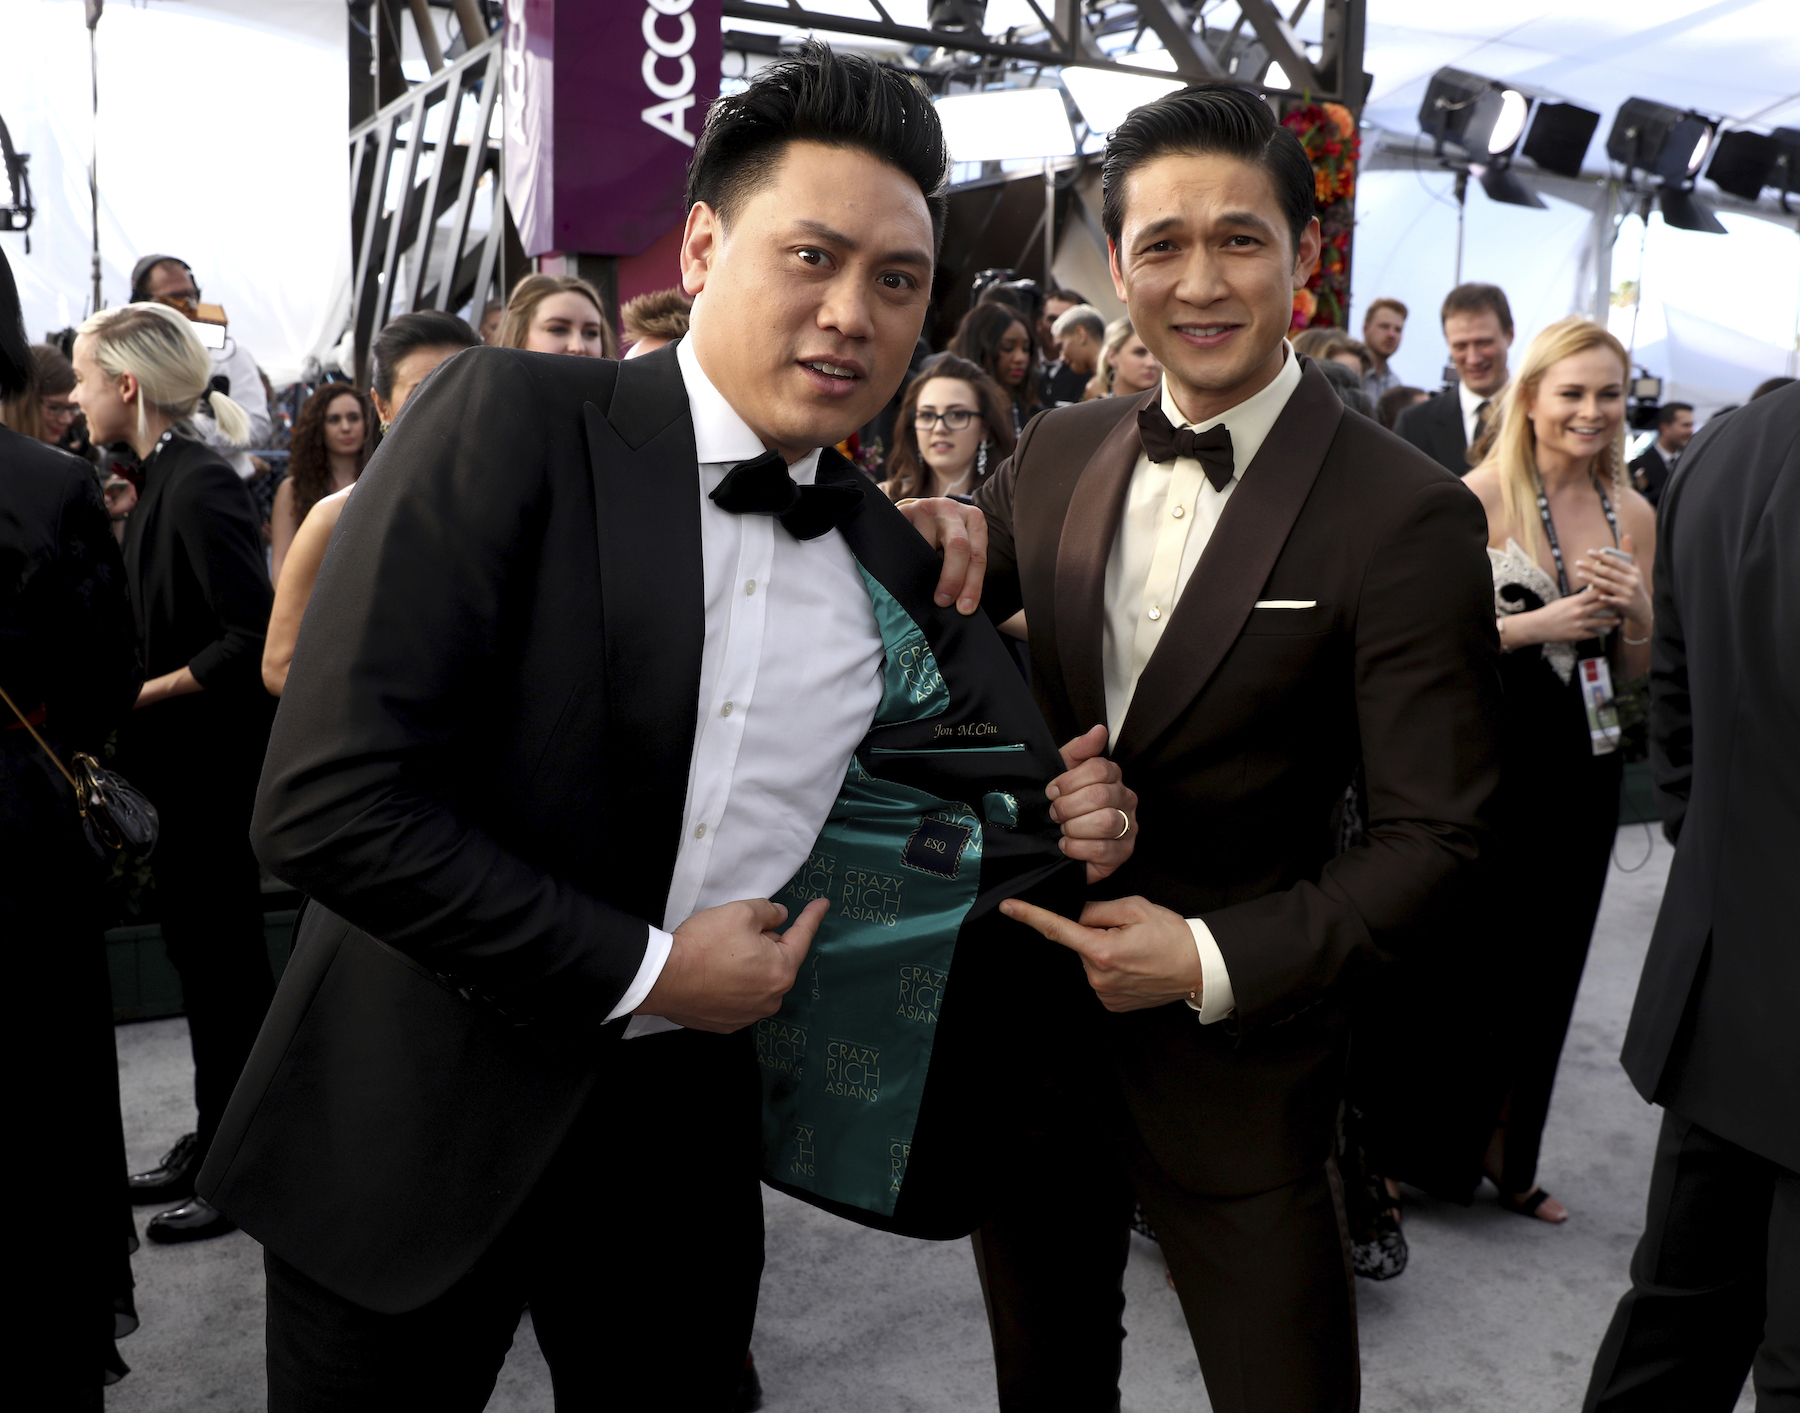 "<div class=""meta image-caption""><div class=""origin-logo origin-image ap""><span>AP</span></div><span class=""caption-text"">Jon M. Chu, left, and Harry Shum Jr. arrive at the 25th annual Screen Actors Guild Awards at the Shrine Auditorium & Expo Hall on Sunday, Jan. 27, 2019, in Los Angeles. (Matt Sayles/Invision/AP)</span></div>"